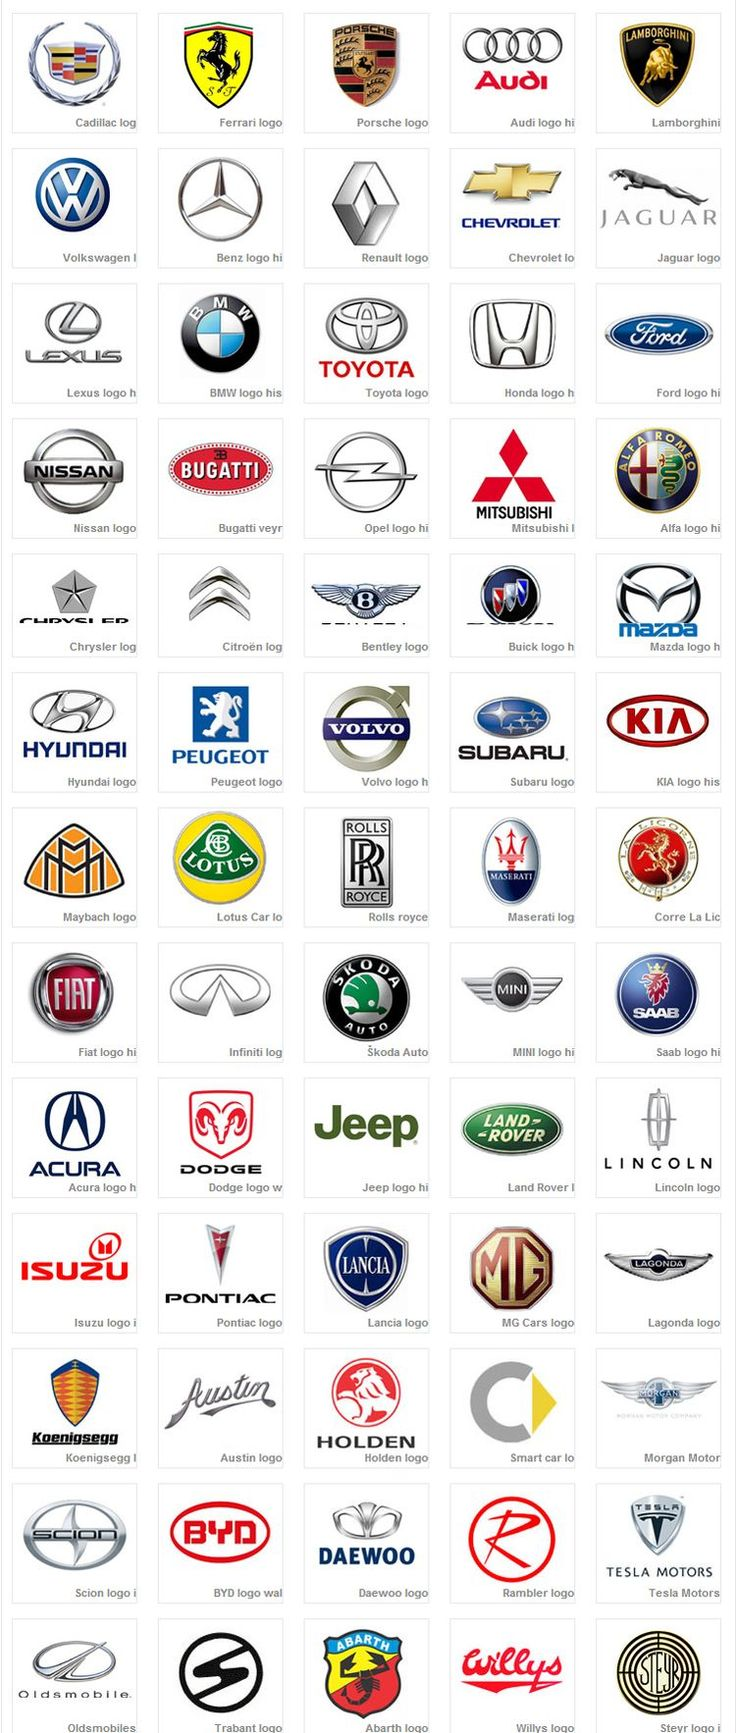 46 best car symbols images on pinterest car logos car symbols and work car logos inspiration for logo design car based not driving lesson based but similar subject matter voltagebd Image collections